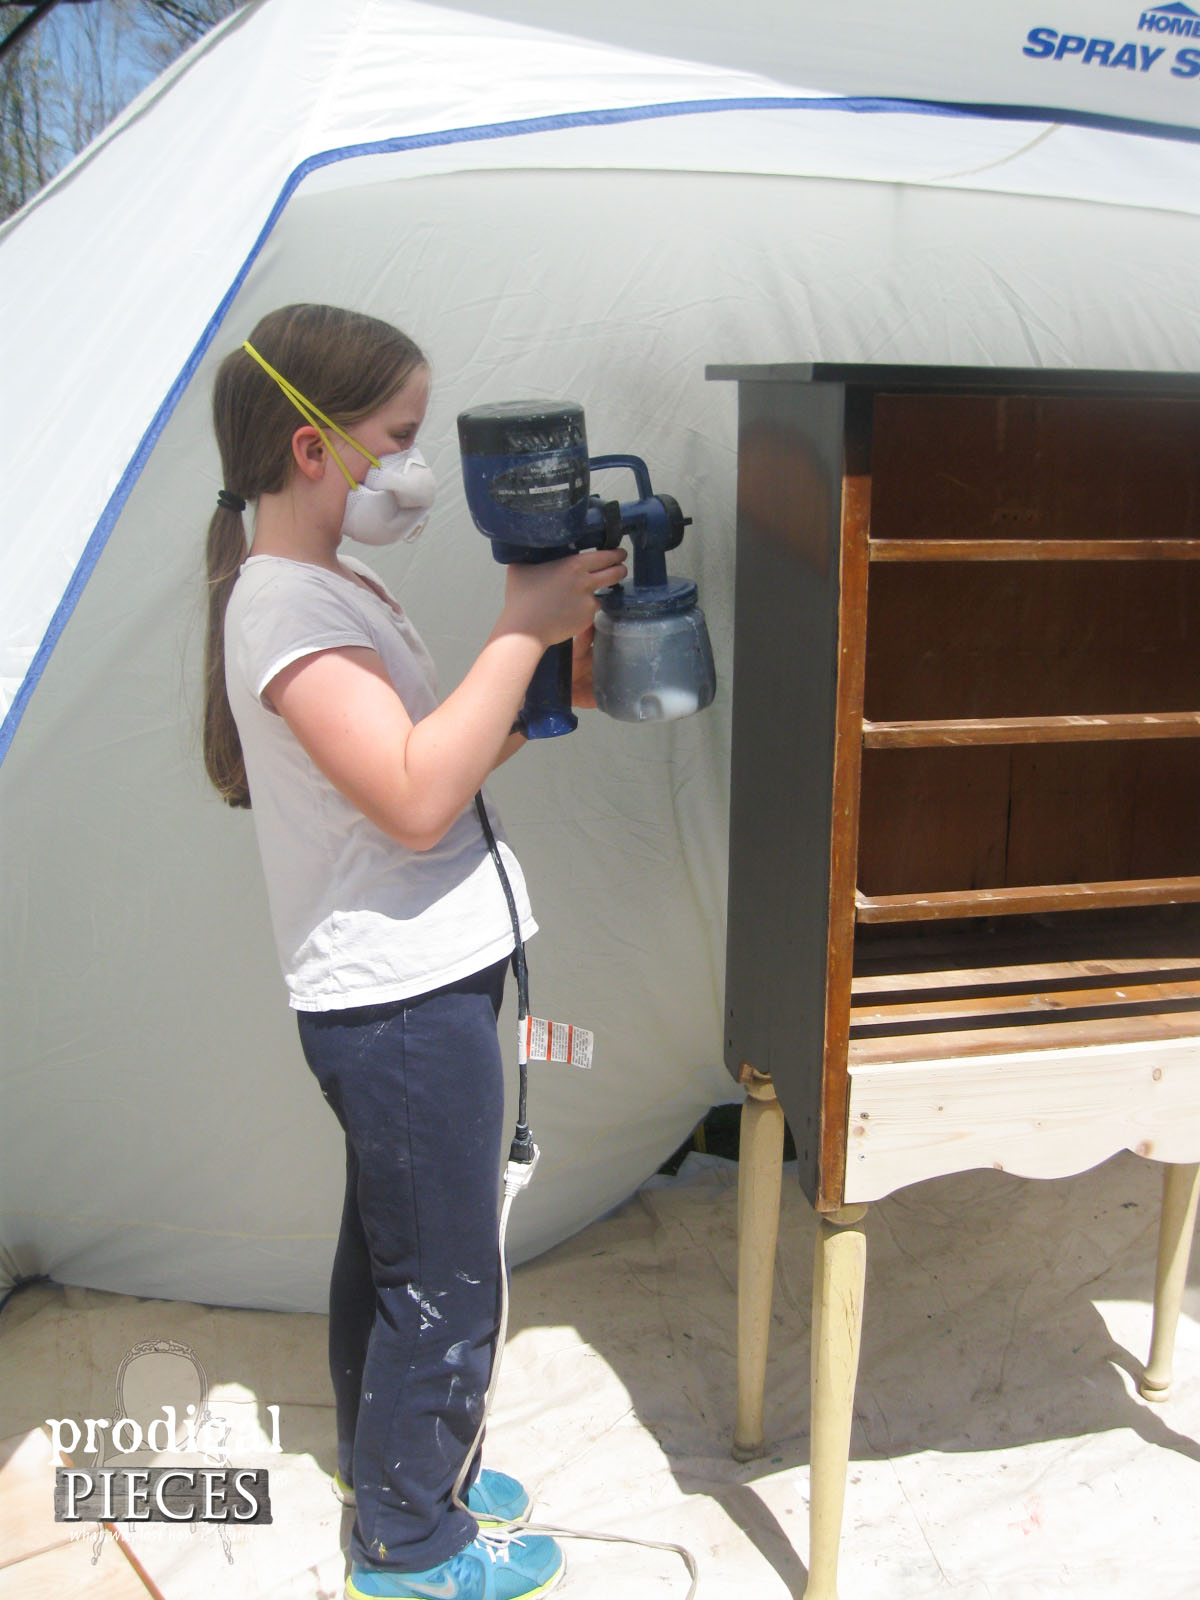 Girl Using HomeRight Finish Max in HomeRight Spray Shelter | Prodigal Pieces | www.prodigalpieces.com